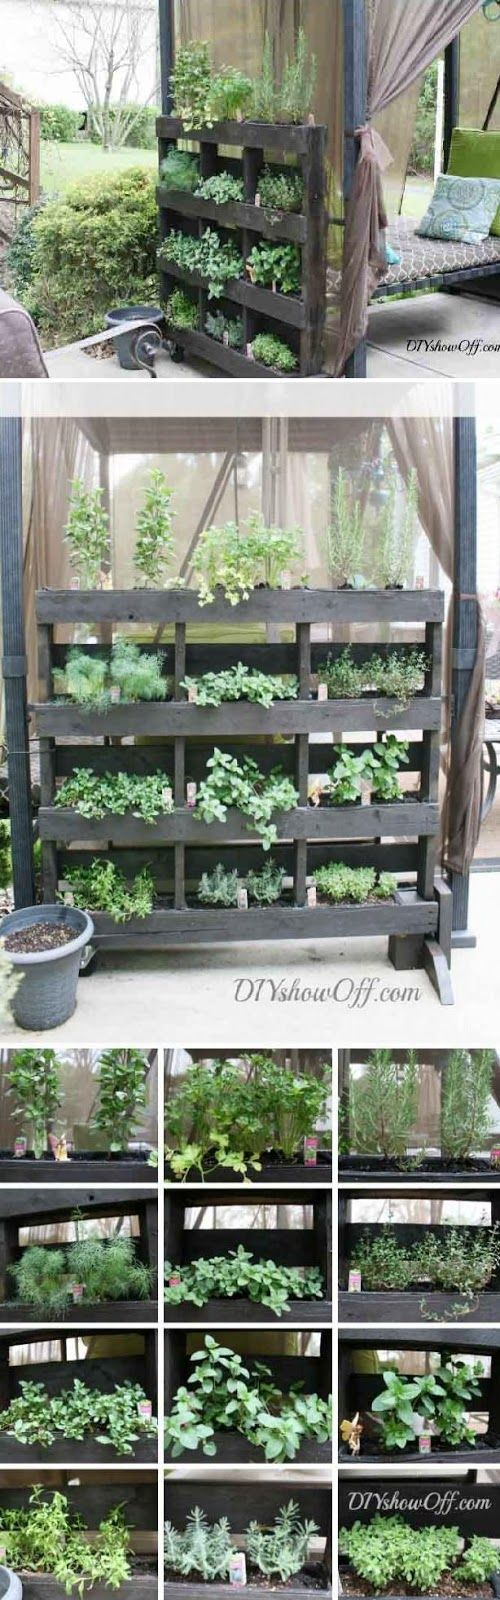 Would love to try this! Great idea for a small urban yard like mine.